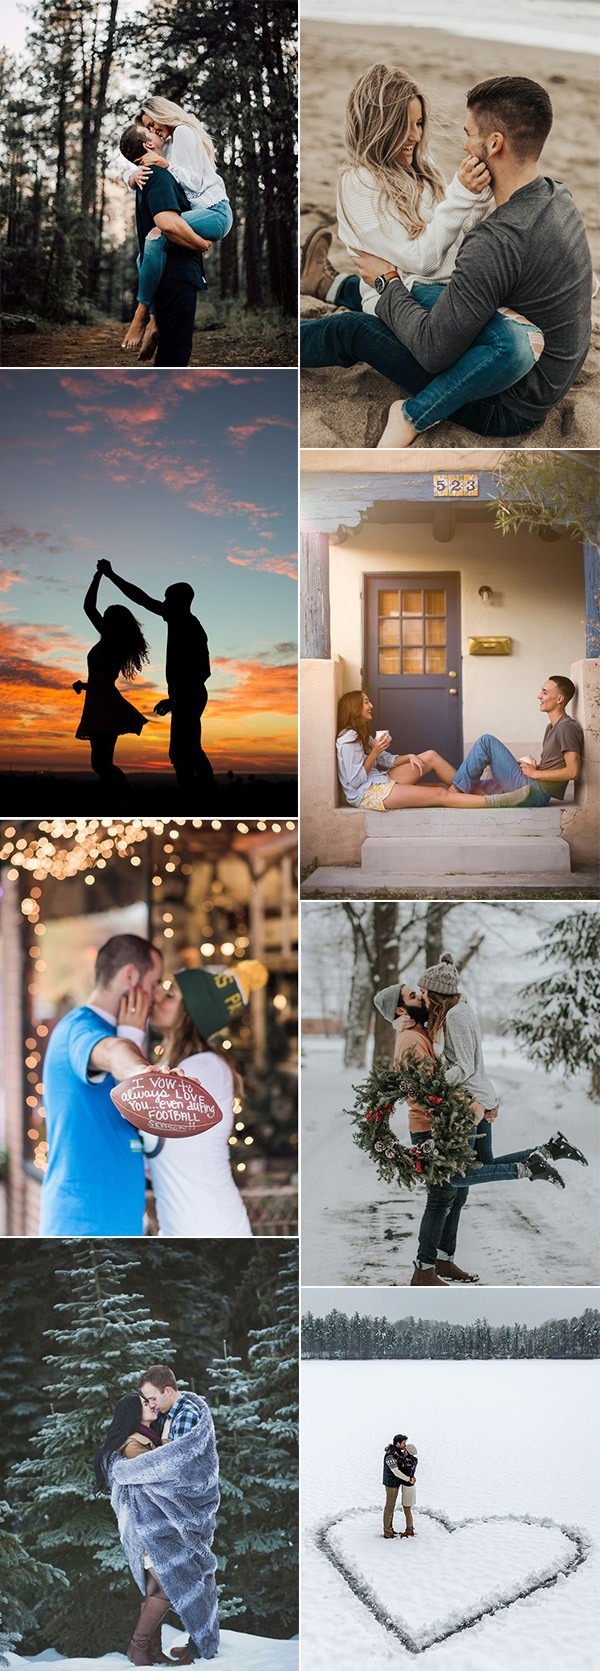 20 amazing wedding engagement photo ideas to get inspired - page 2 of 2